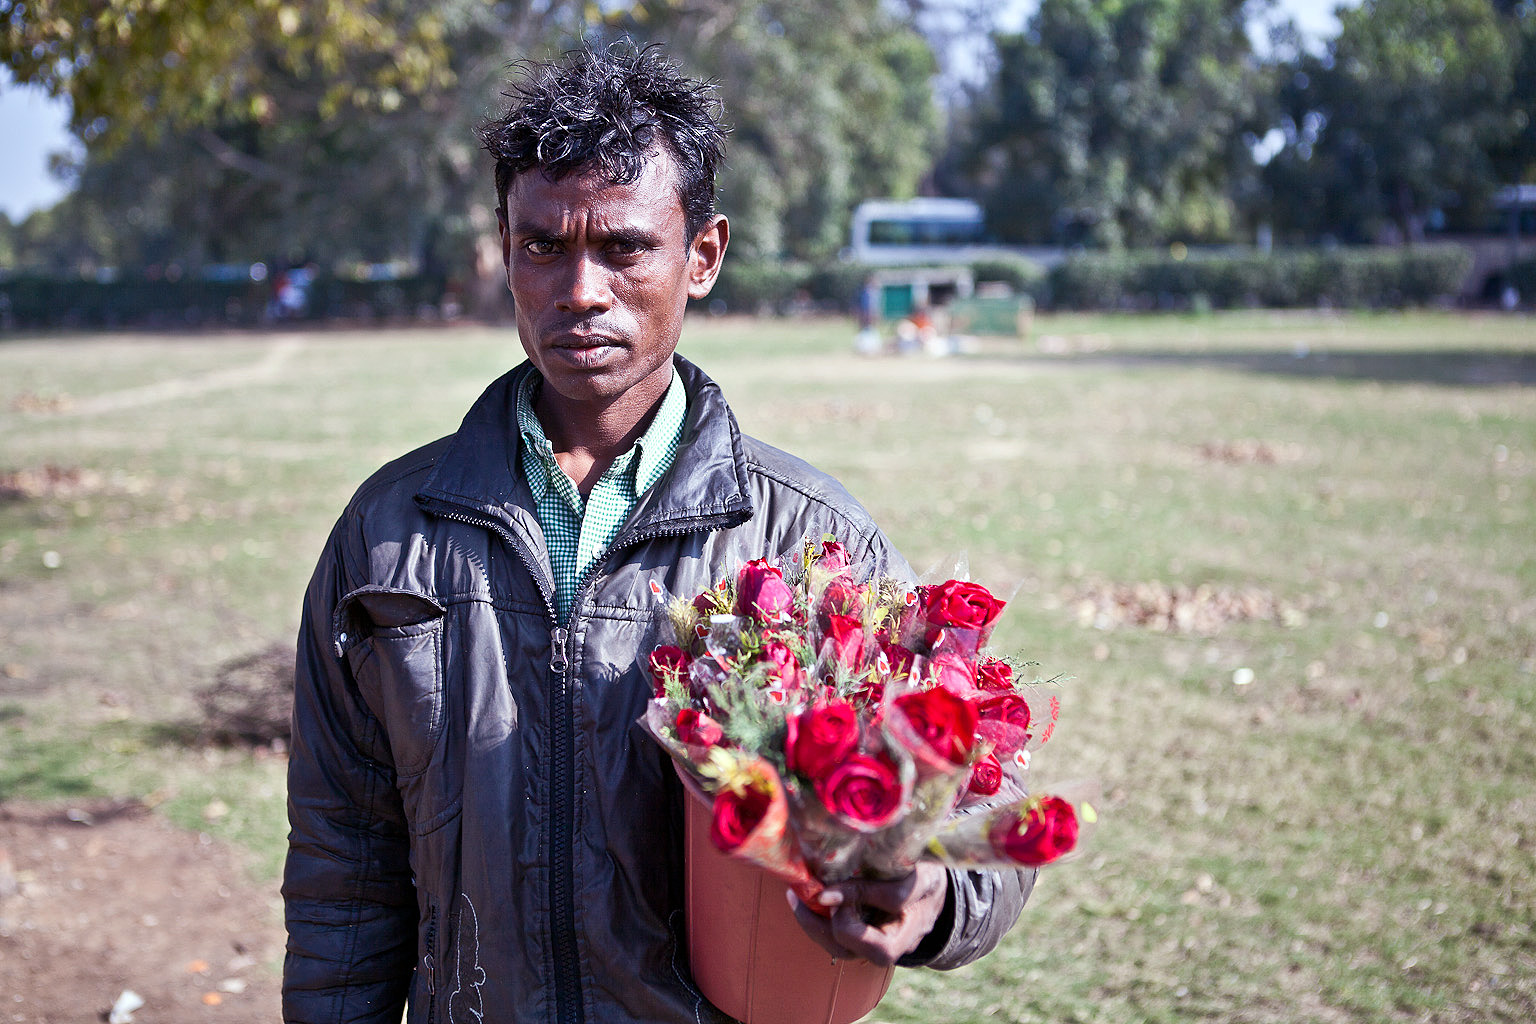 He sells roses to buyers near India Gate.